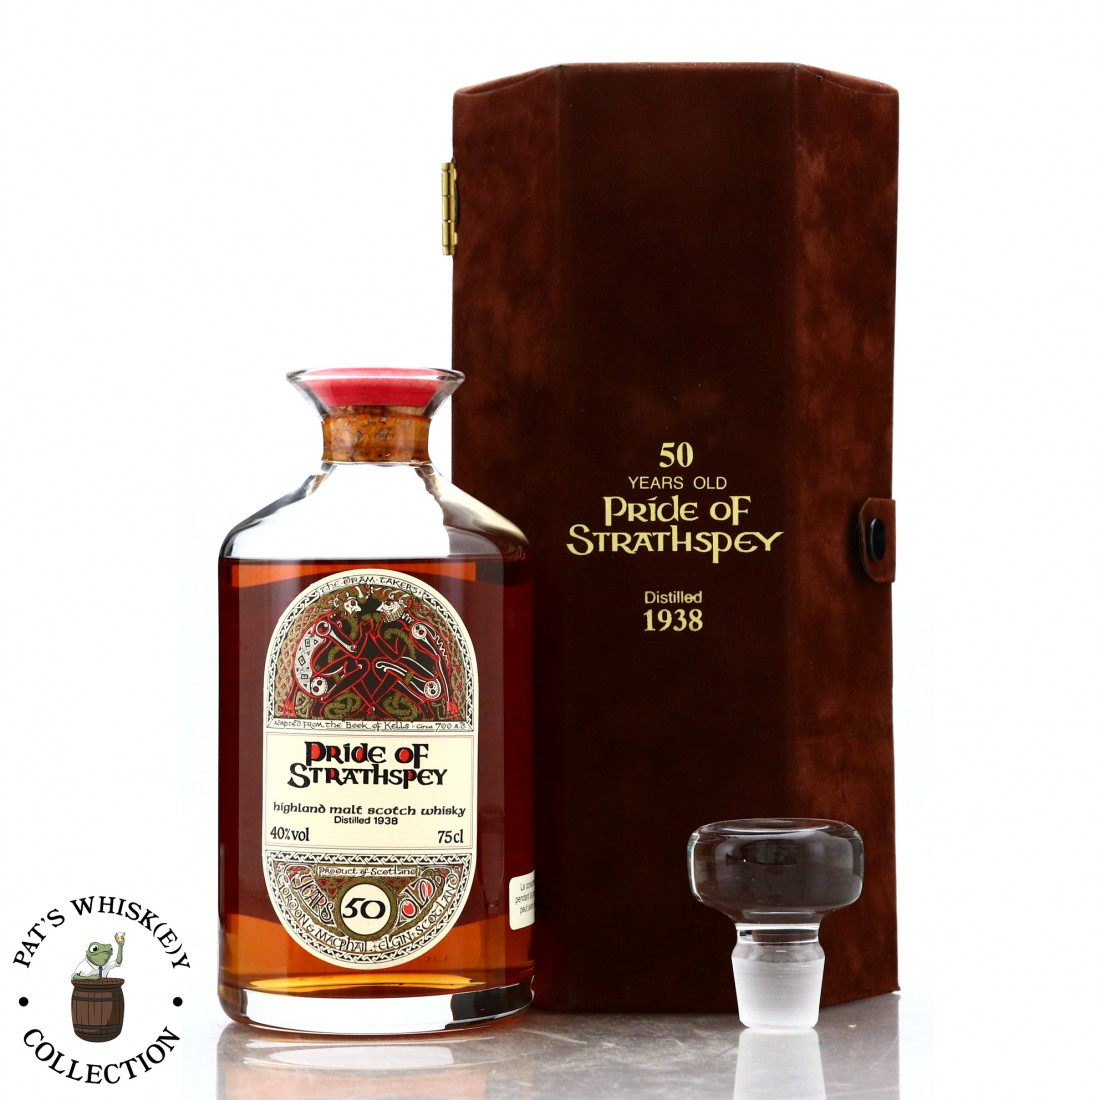 Pride of Strathspey 1938 Gordon and MacPhail 50 Year Old ' Book of Kells' Decanter